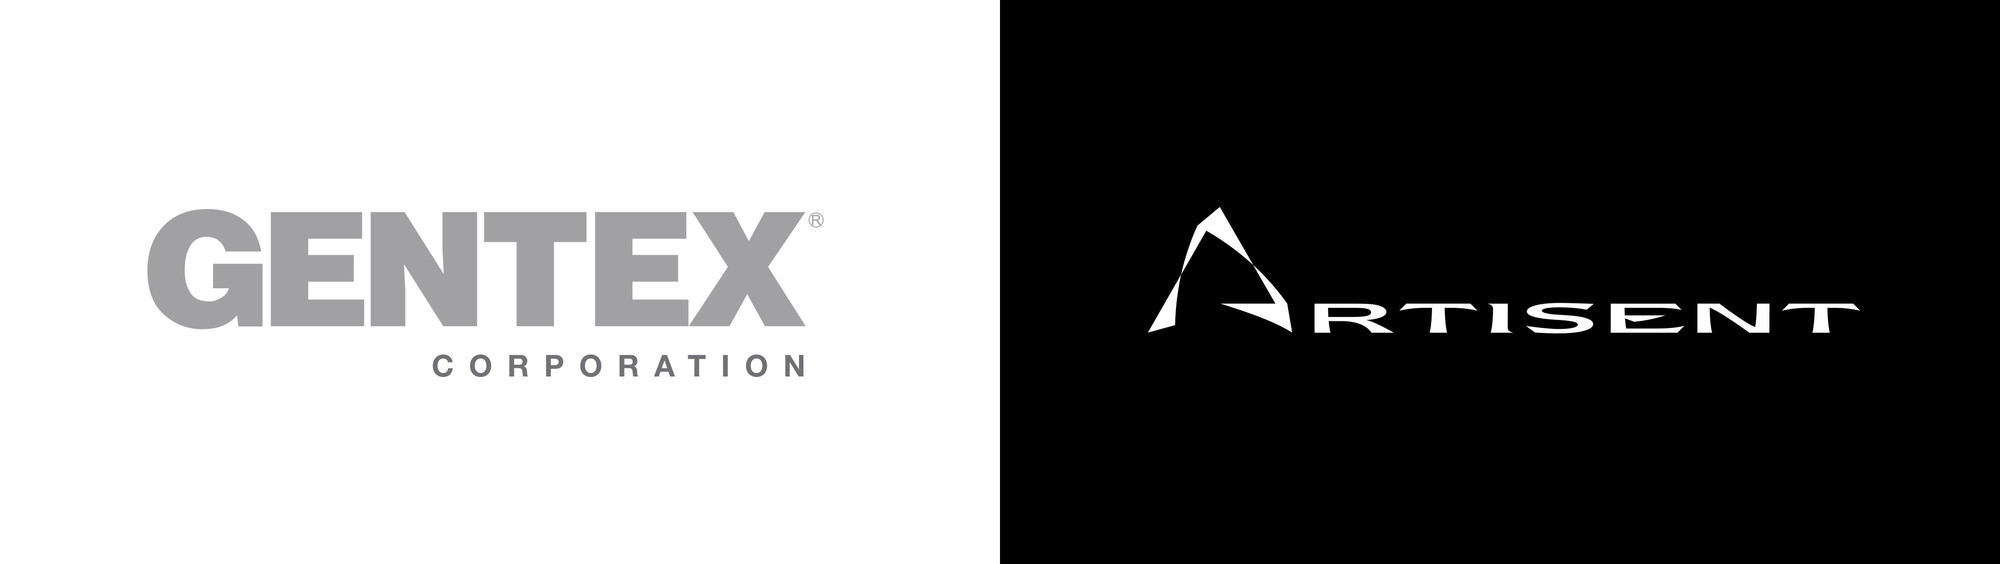 ARTISENT ACQUIRED BY GENTEX CORPORATION